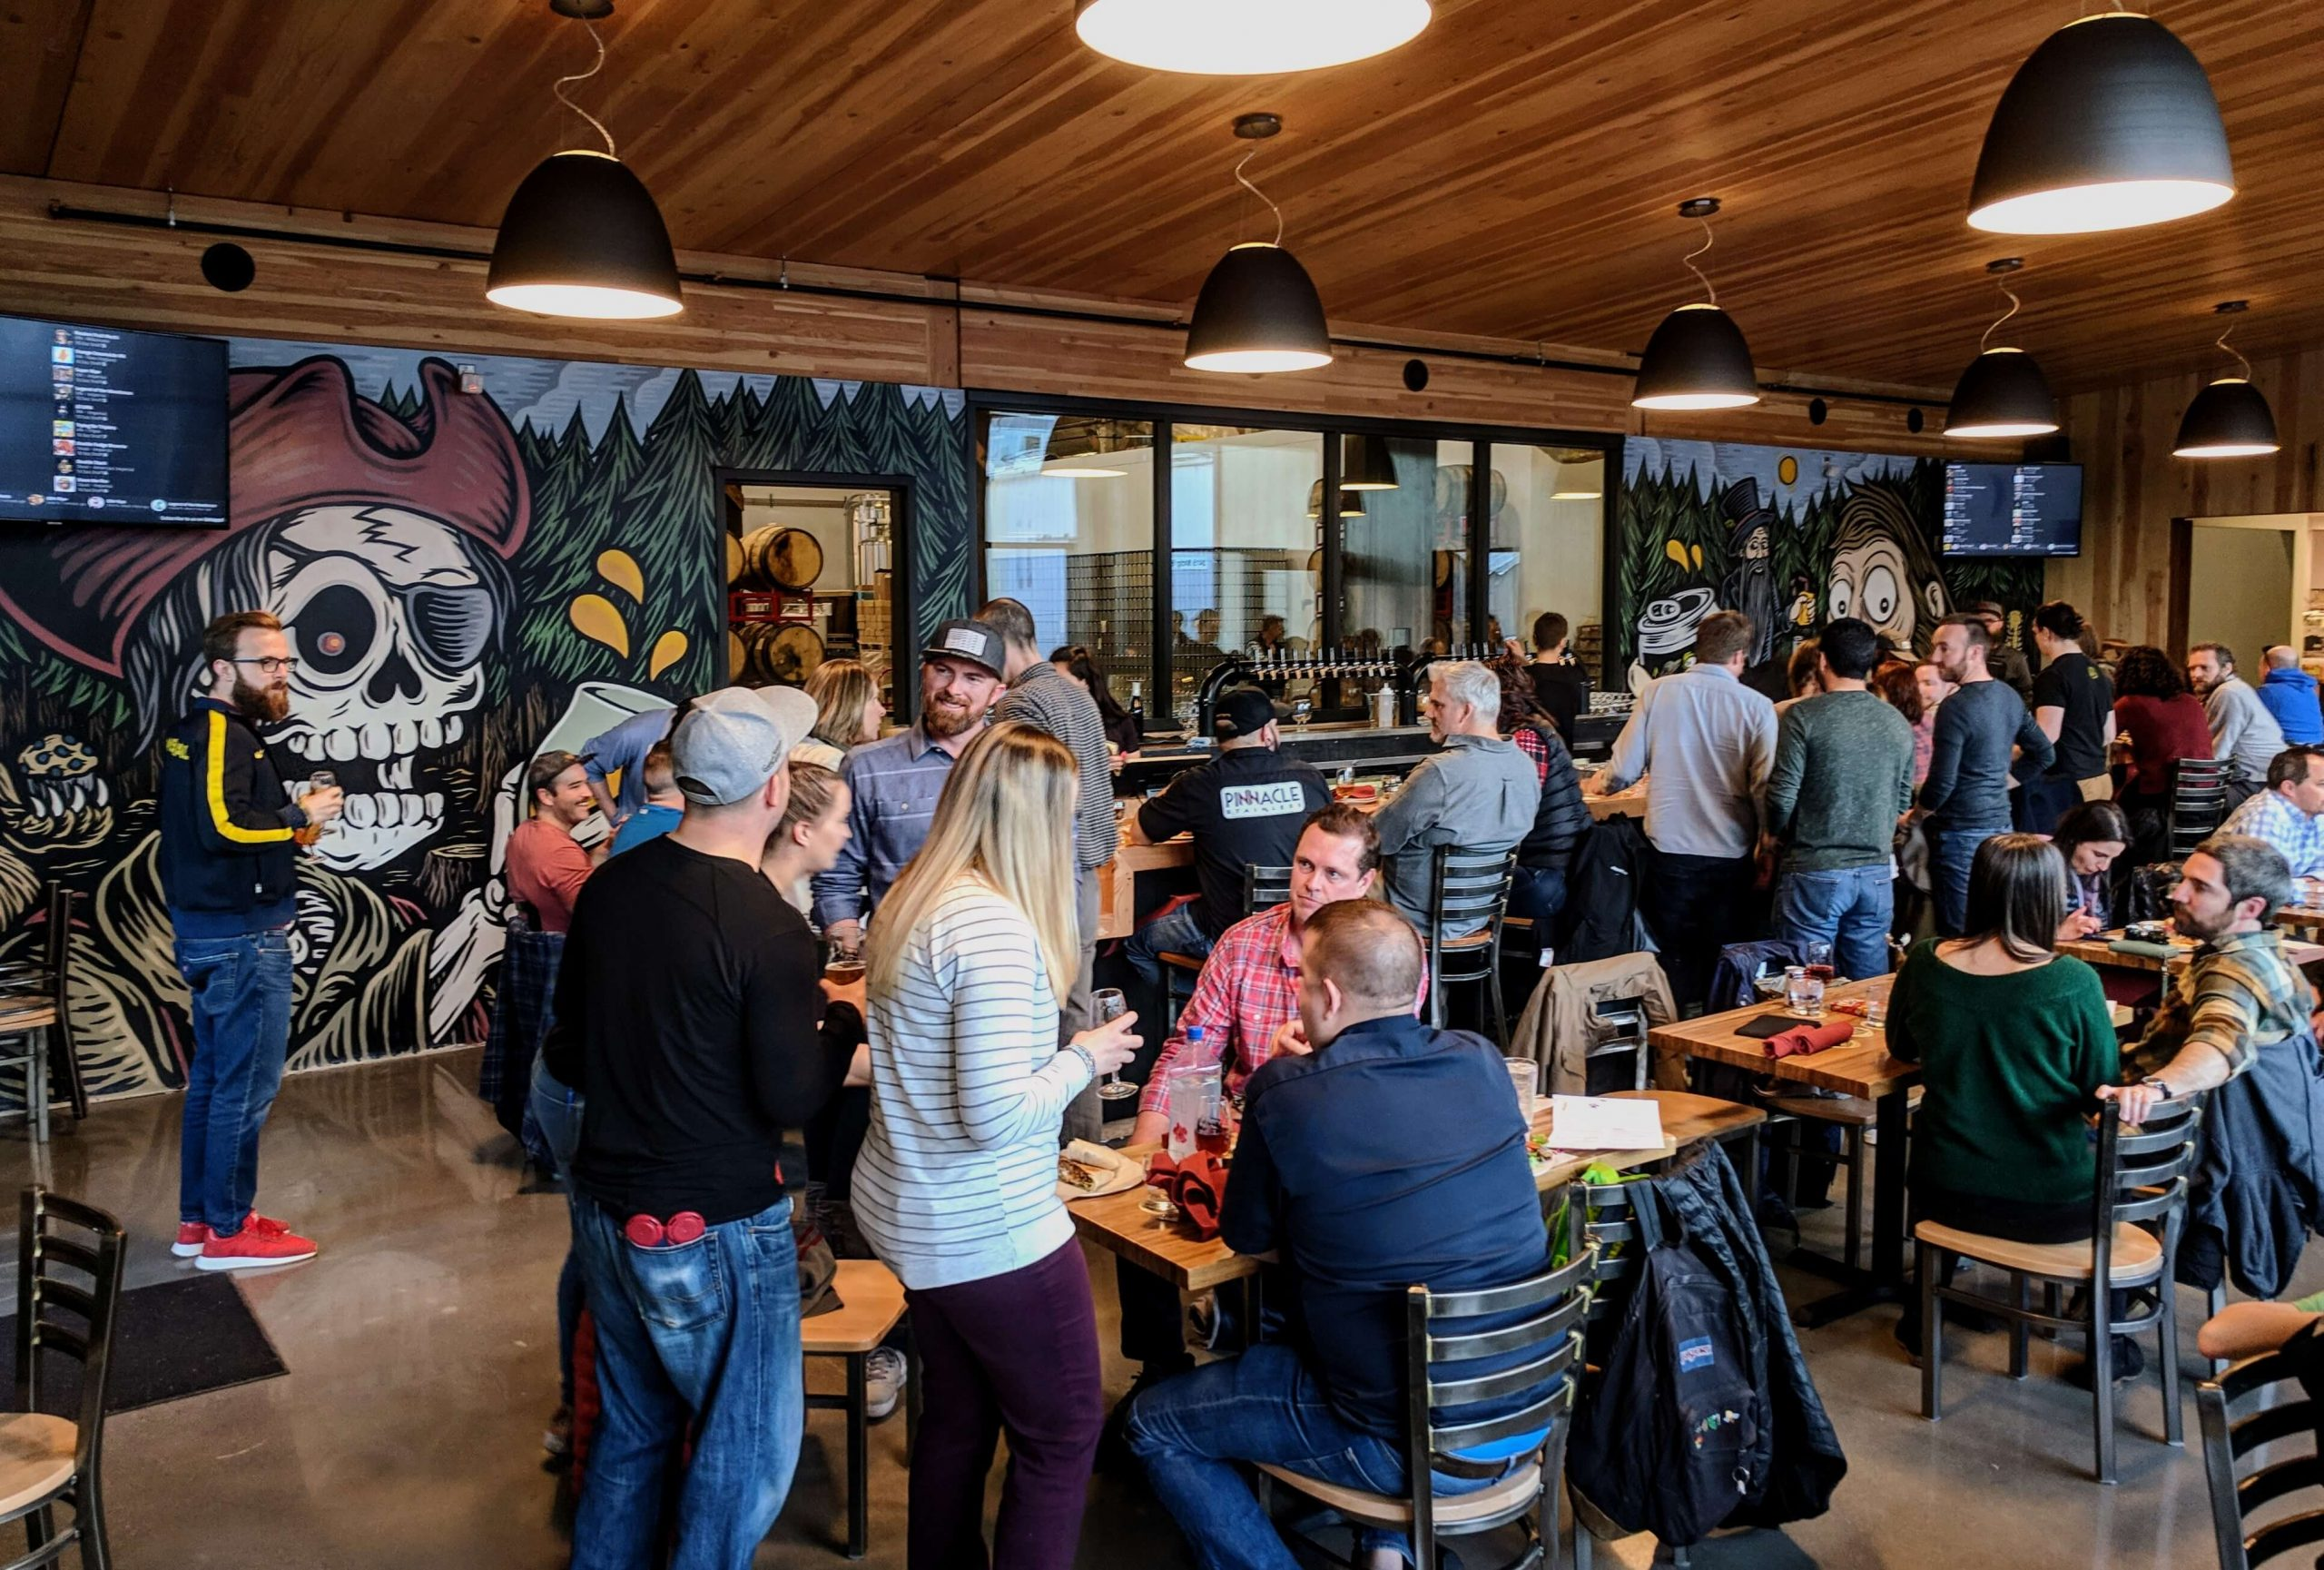 Inside the taproom at the NW Brewpub location of Great Notion Brewing in Portland, Oregon